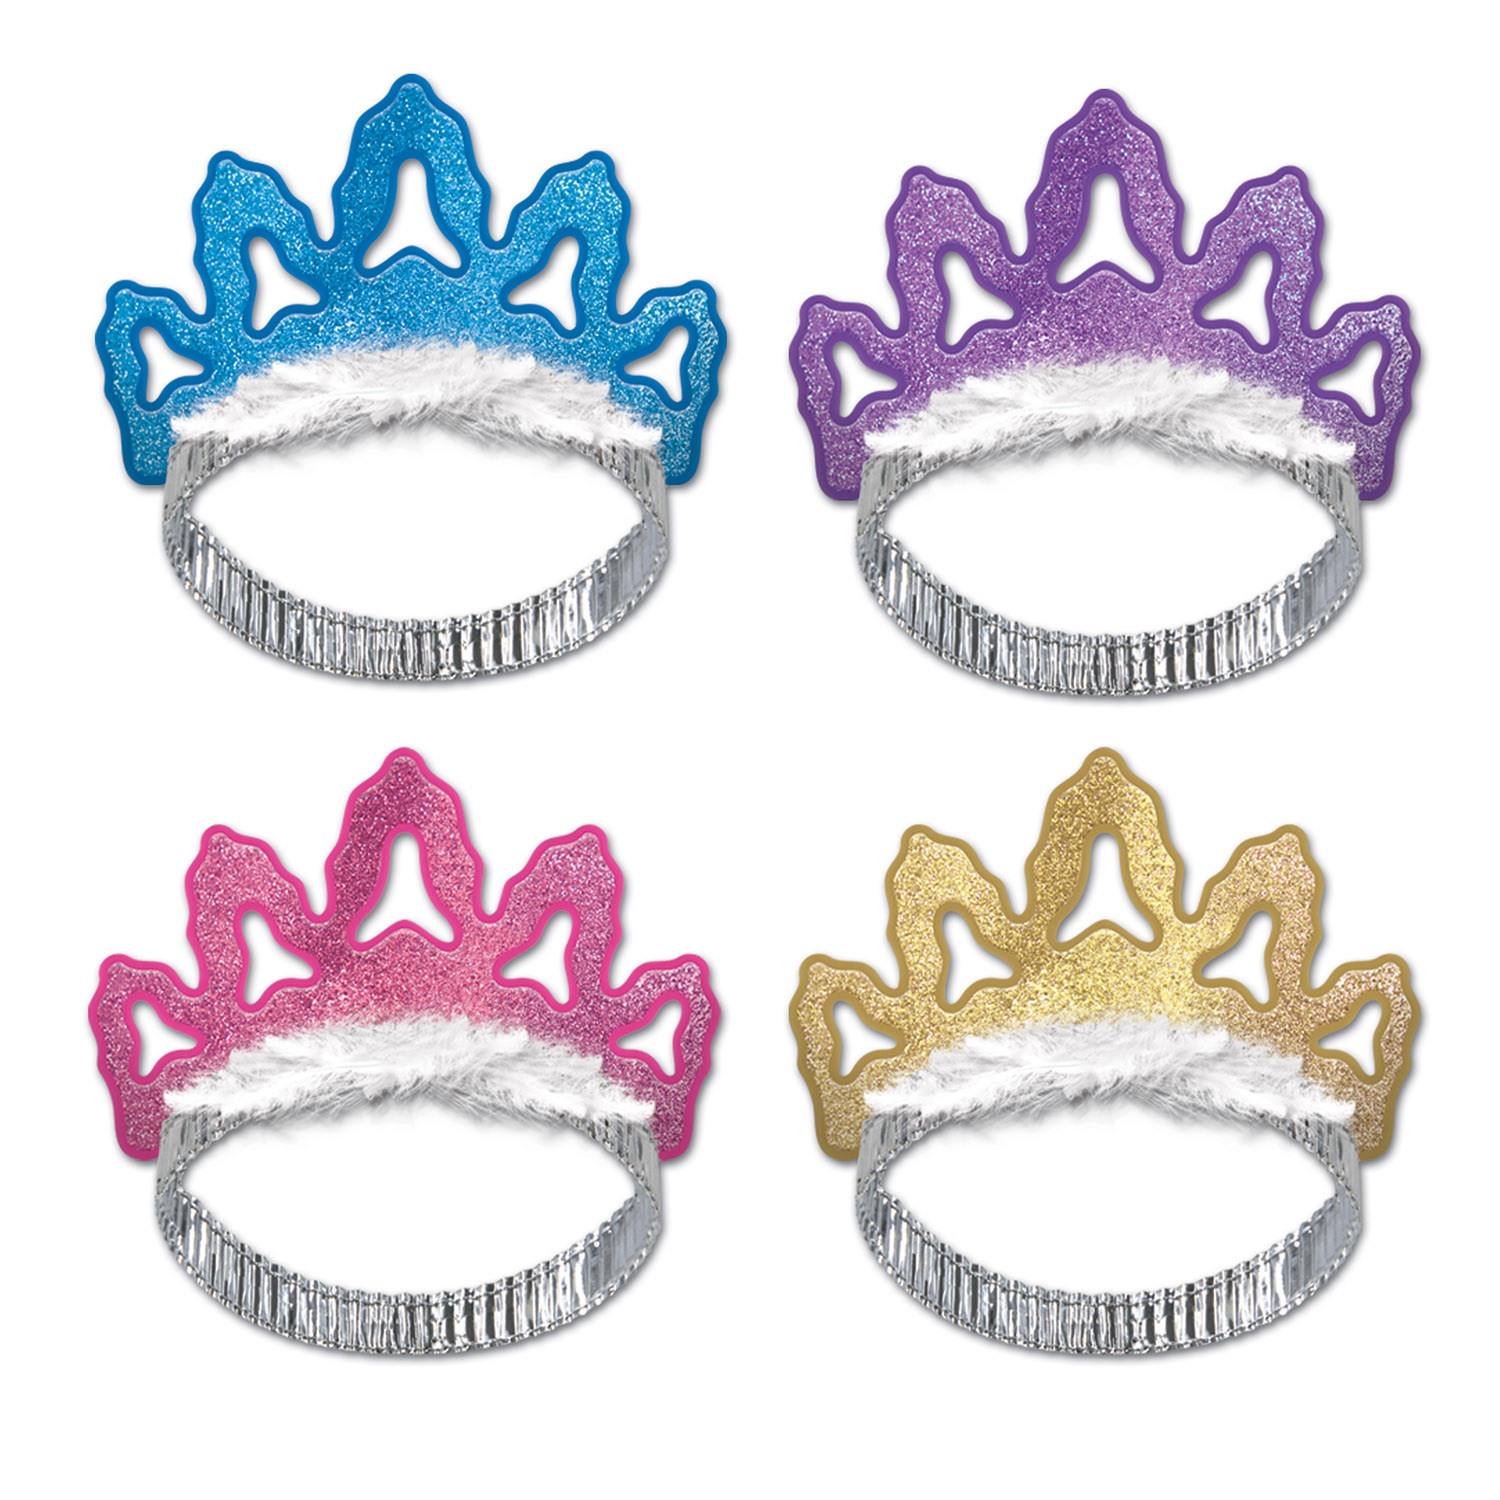 Coronet Tiaras (Pack of 48) tiaras, party, favor, purple, pink, blue, gold, new years eve, wholesale, inexpensive, bulk